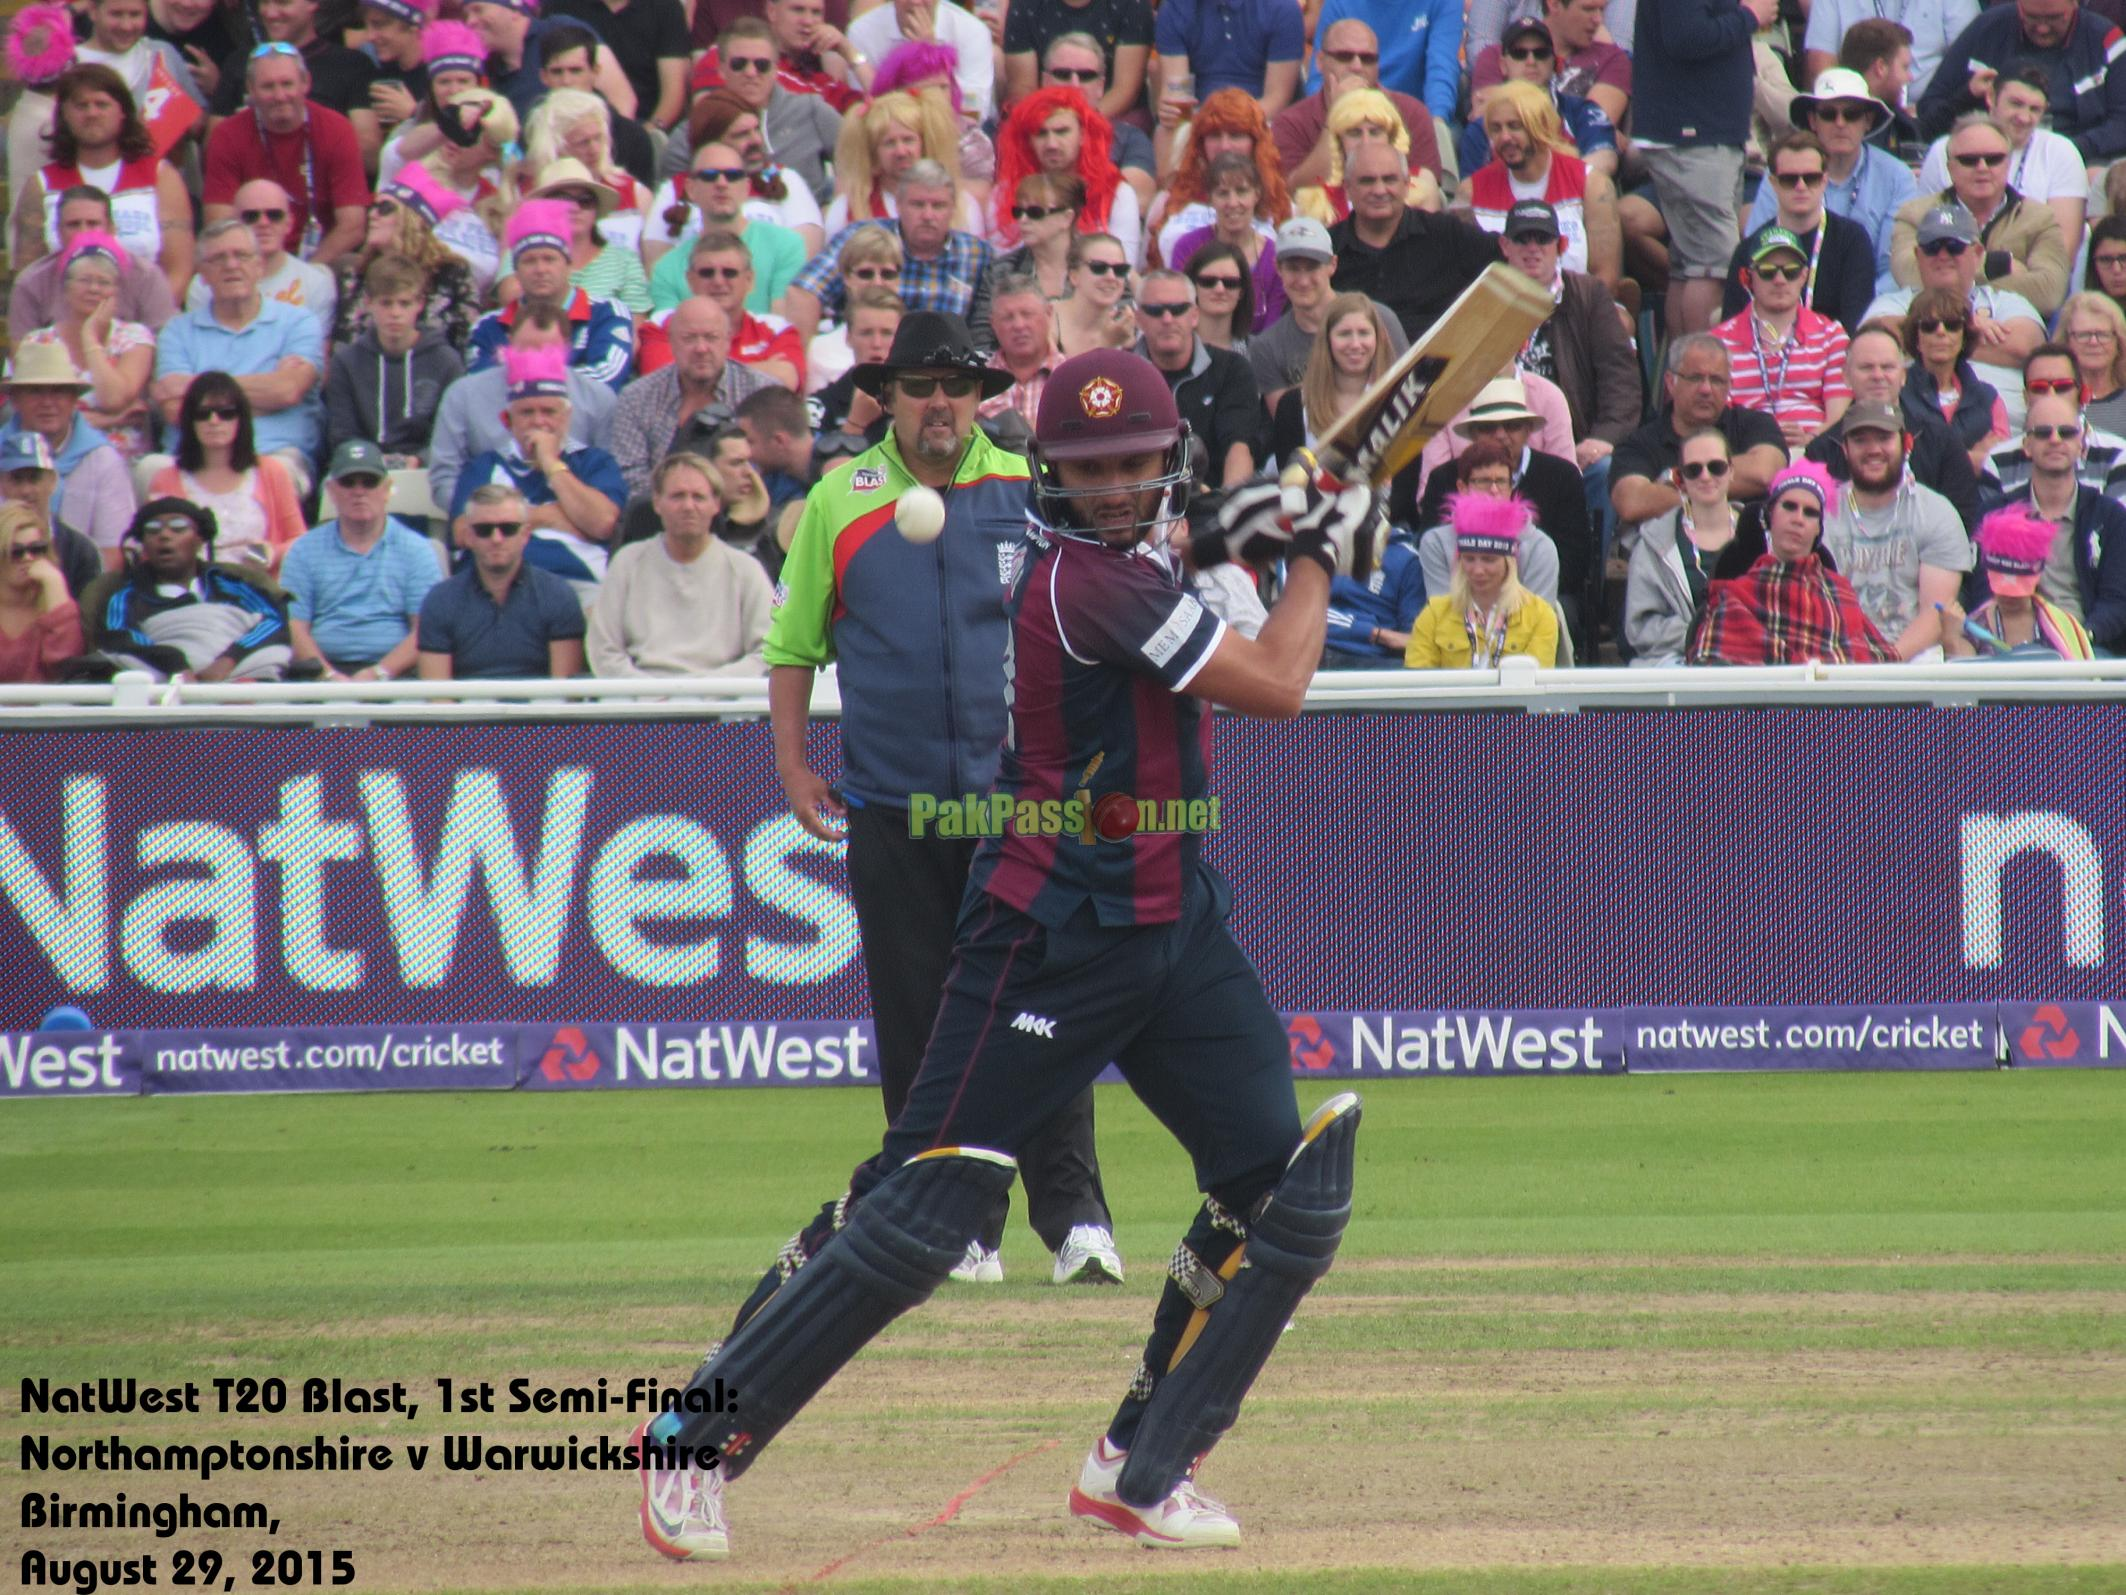 Shahid Afridi stars with an all-round performance during the Natwest T20 Blast Finals Day